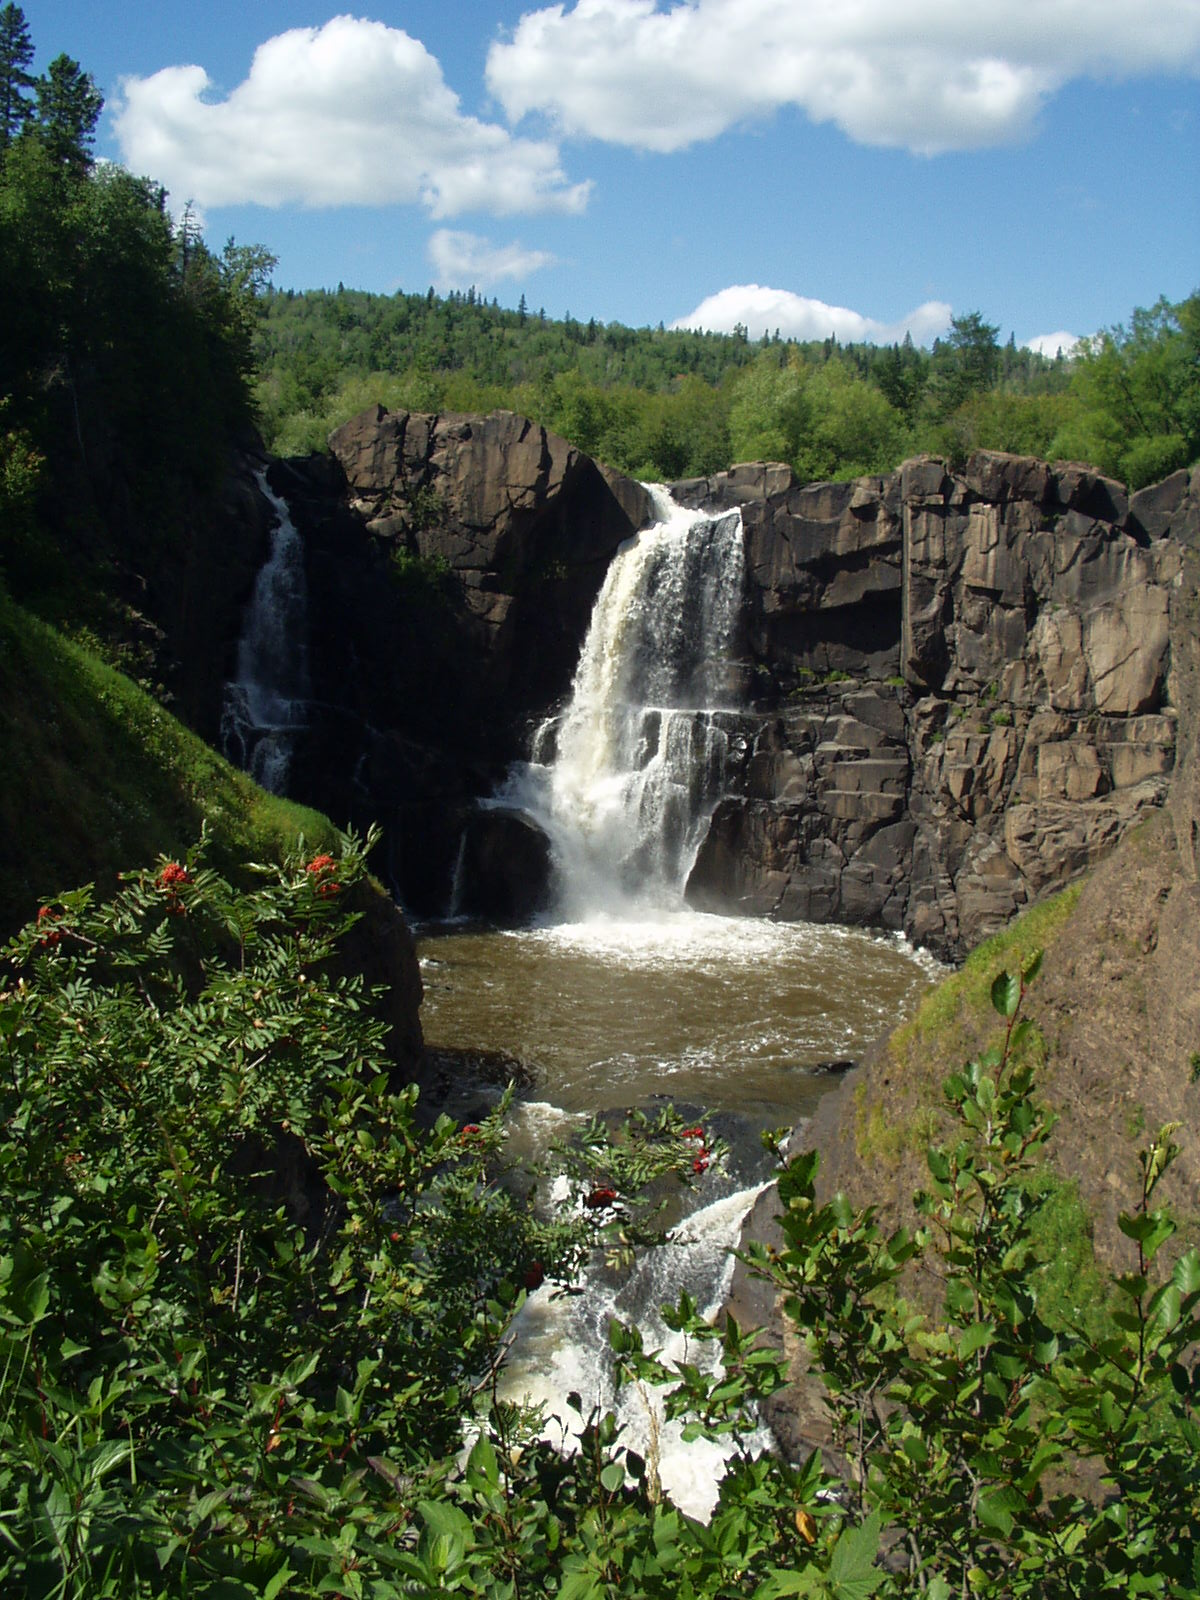 Grand portage state park wikipedia for Waterfall it